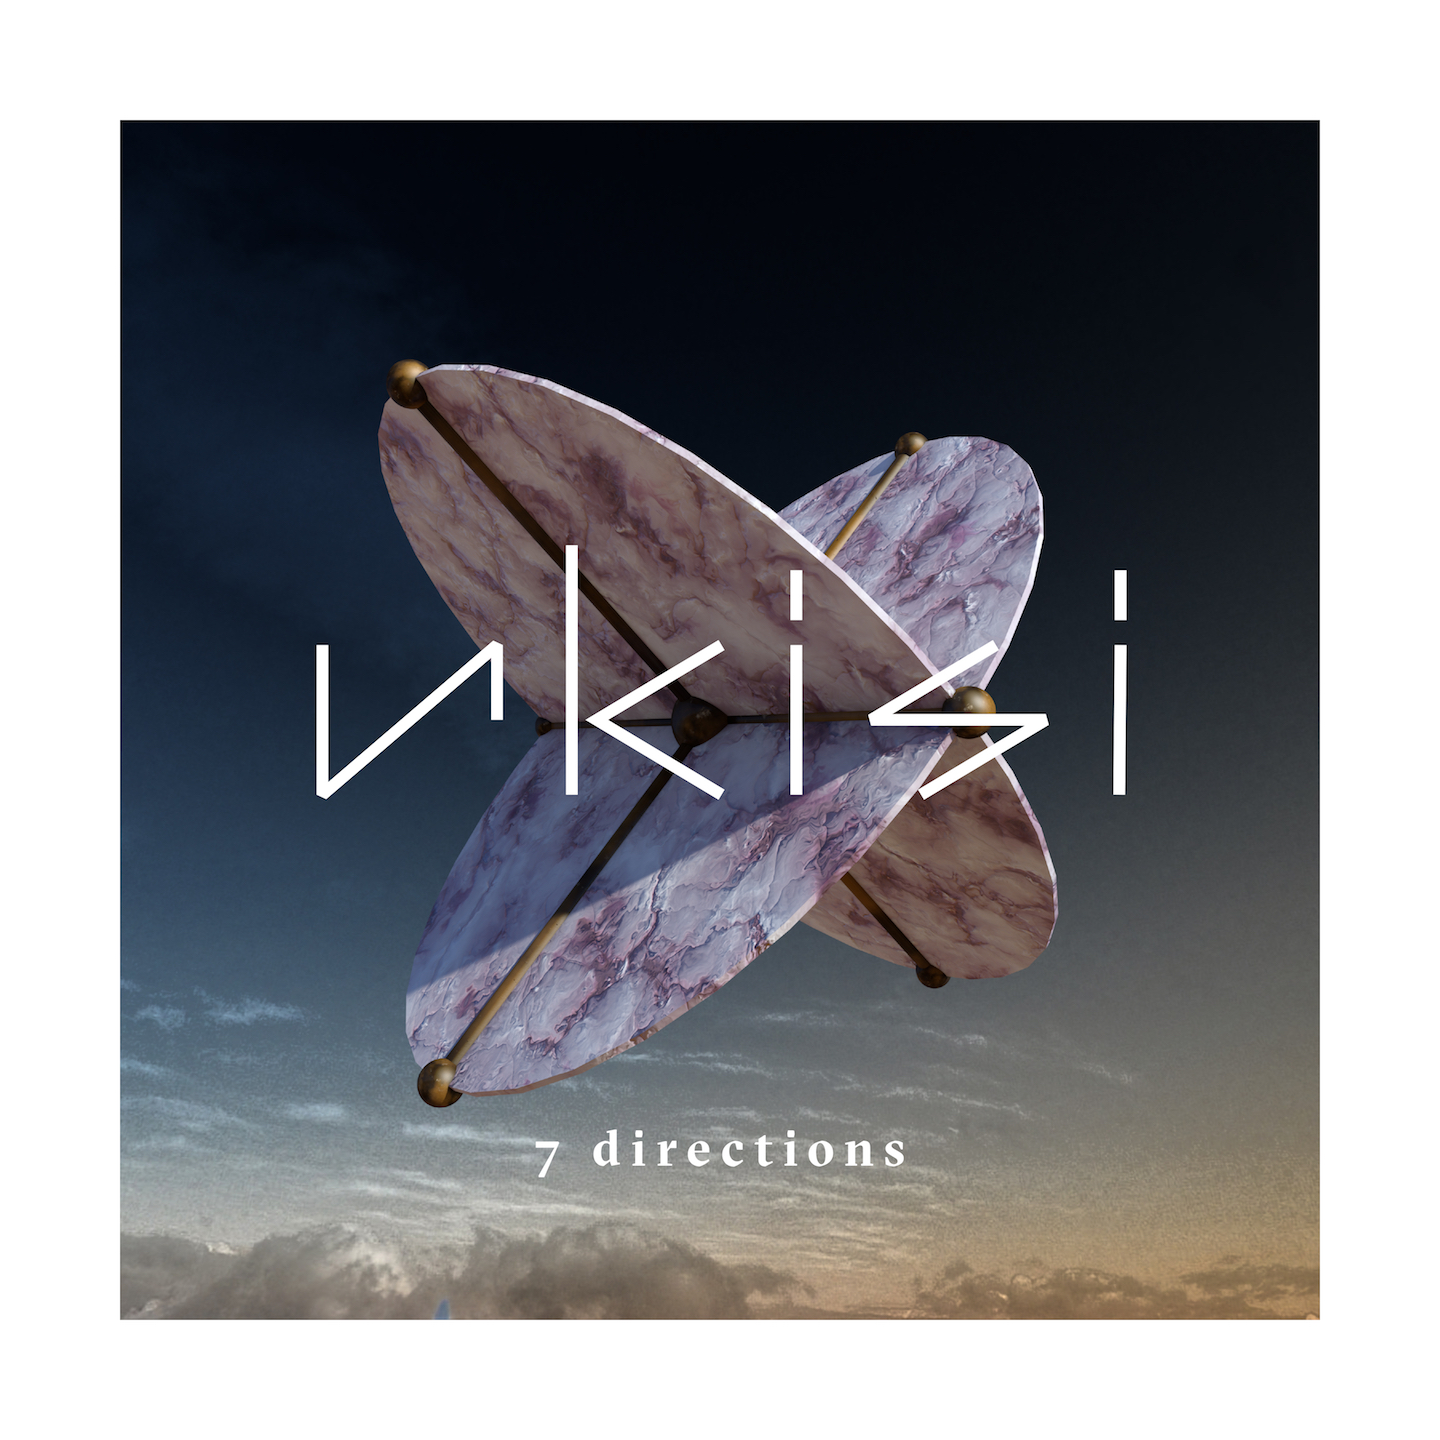 Nkisi fuses polyrhythms and African cosmology on new album 7 Directions